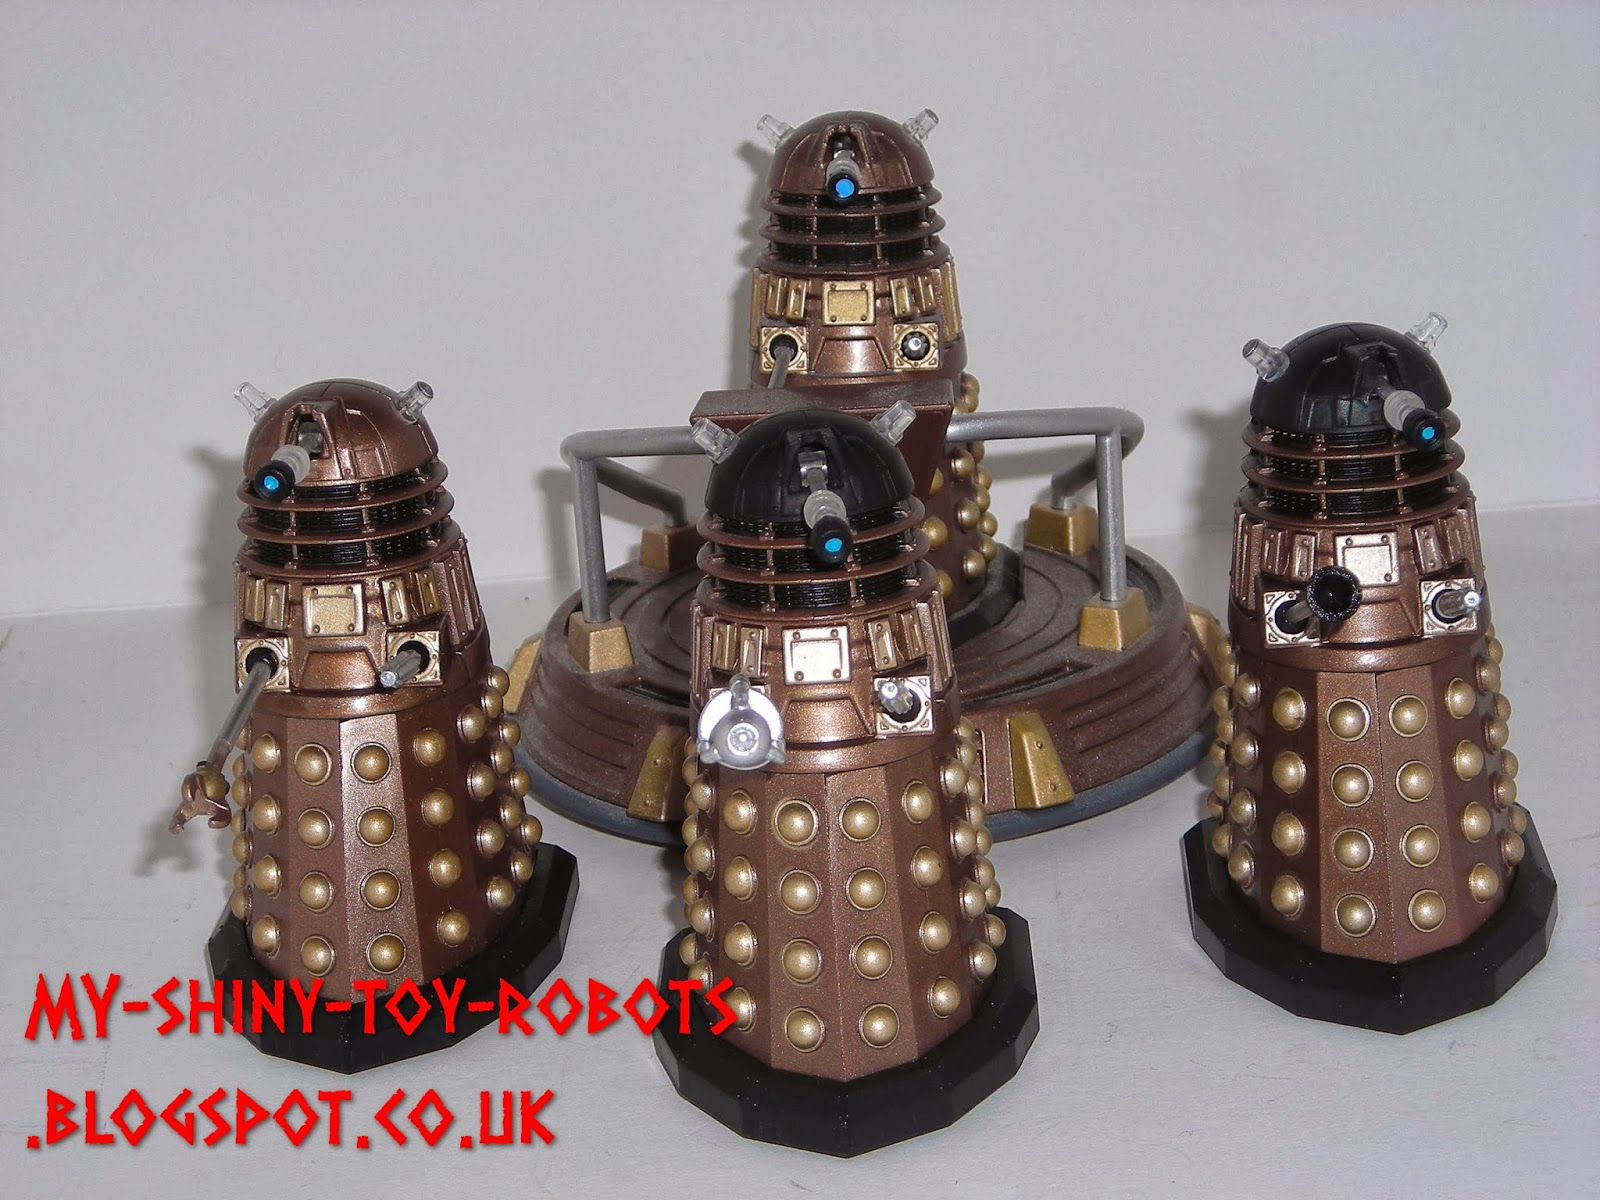 The Dalek task force is ready